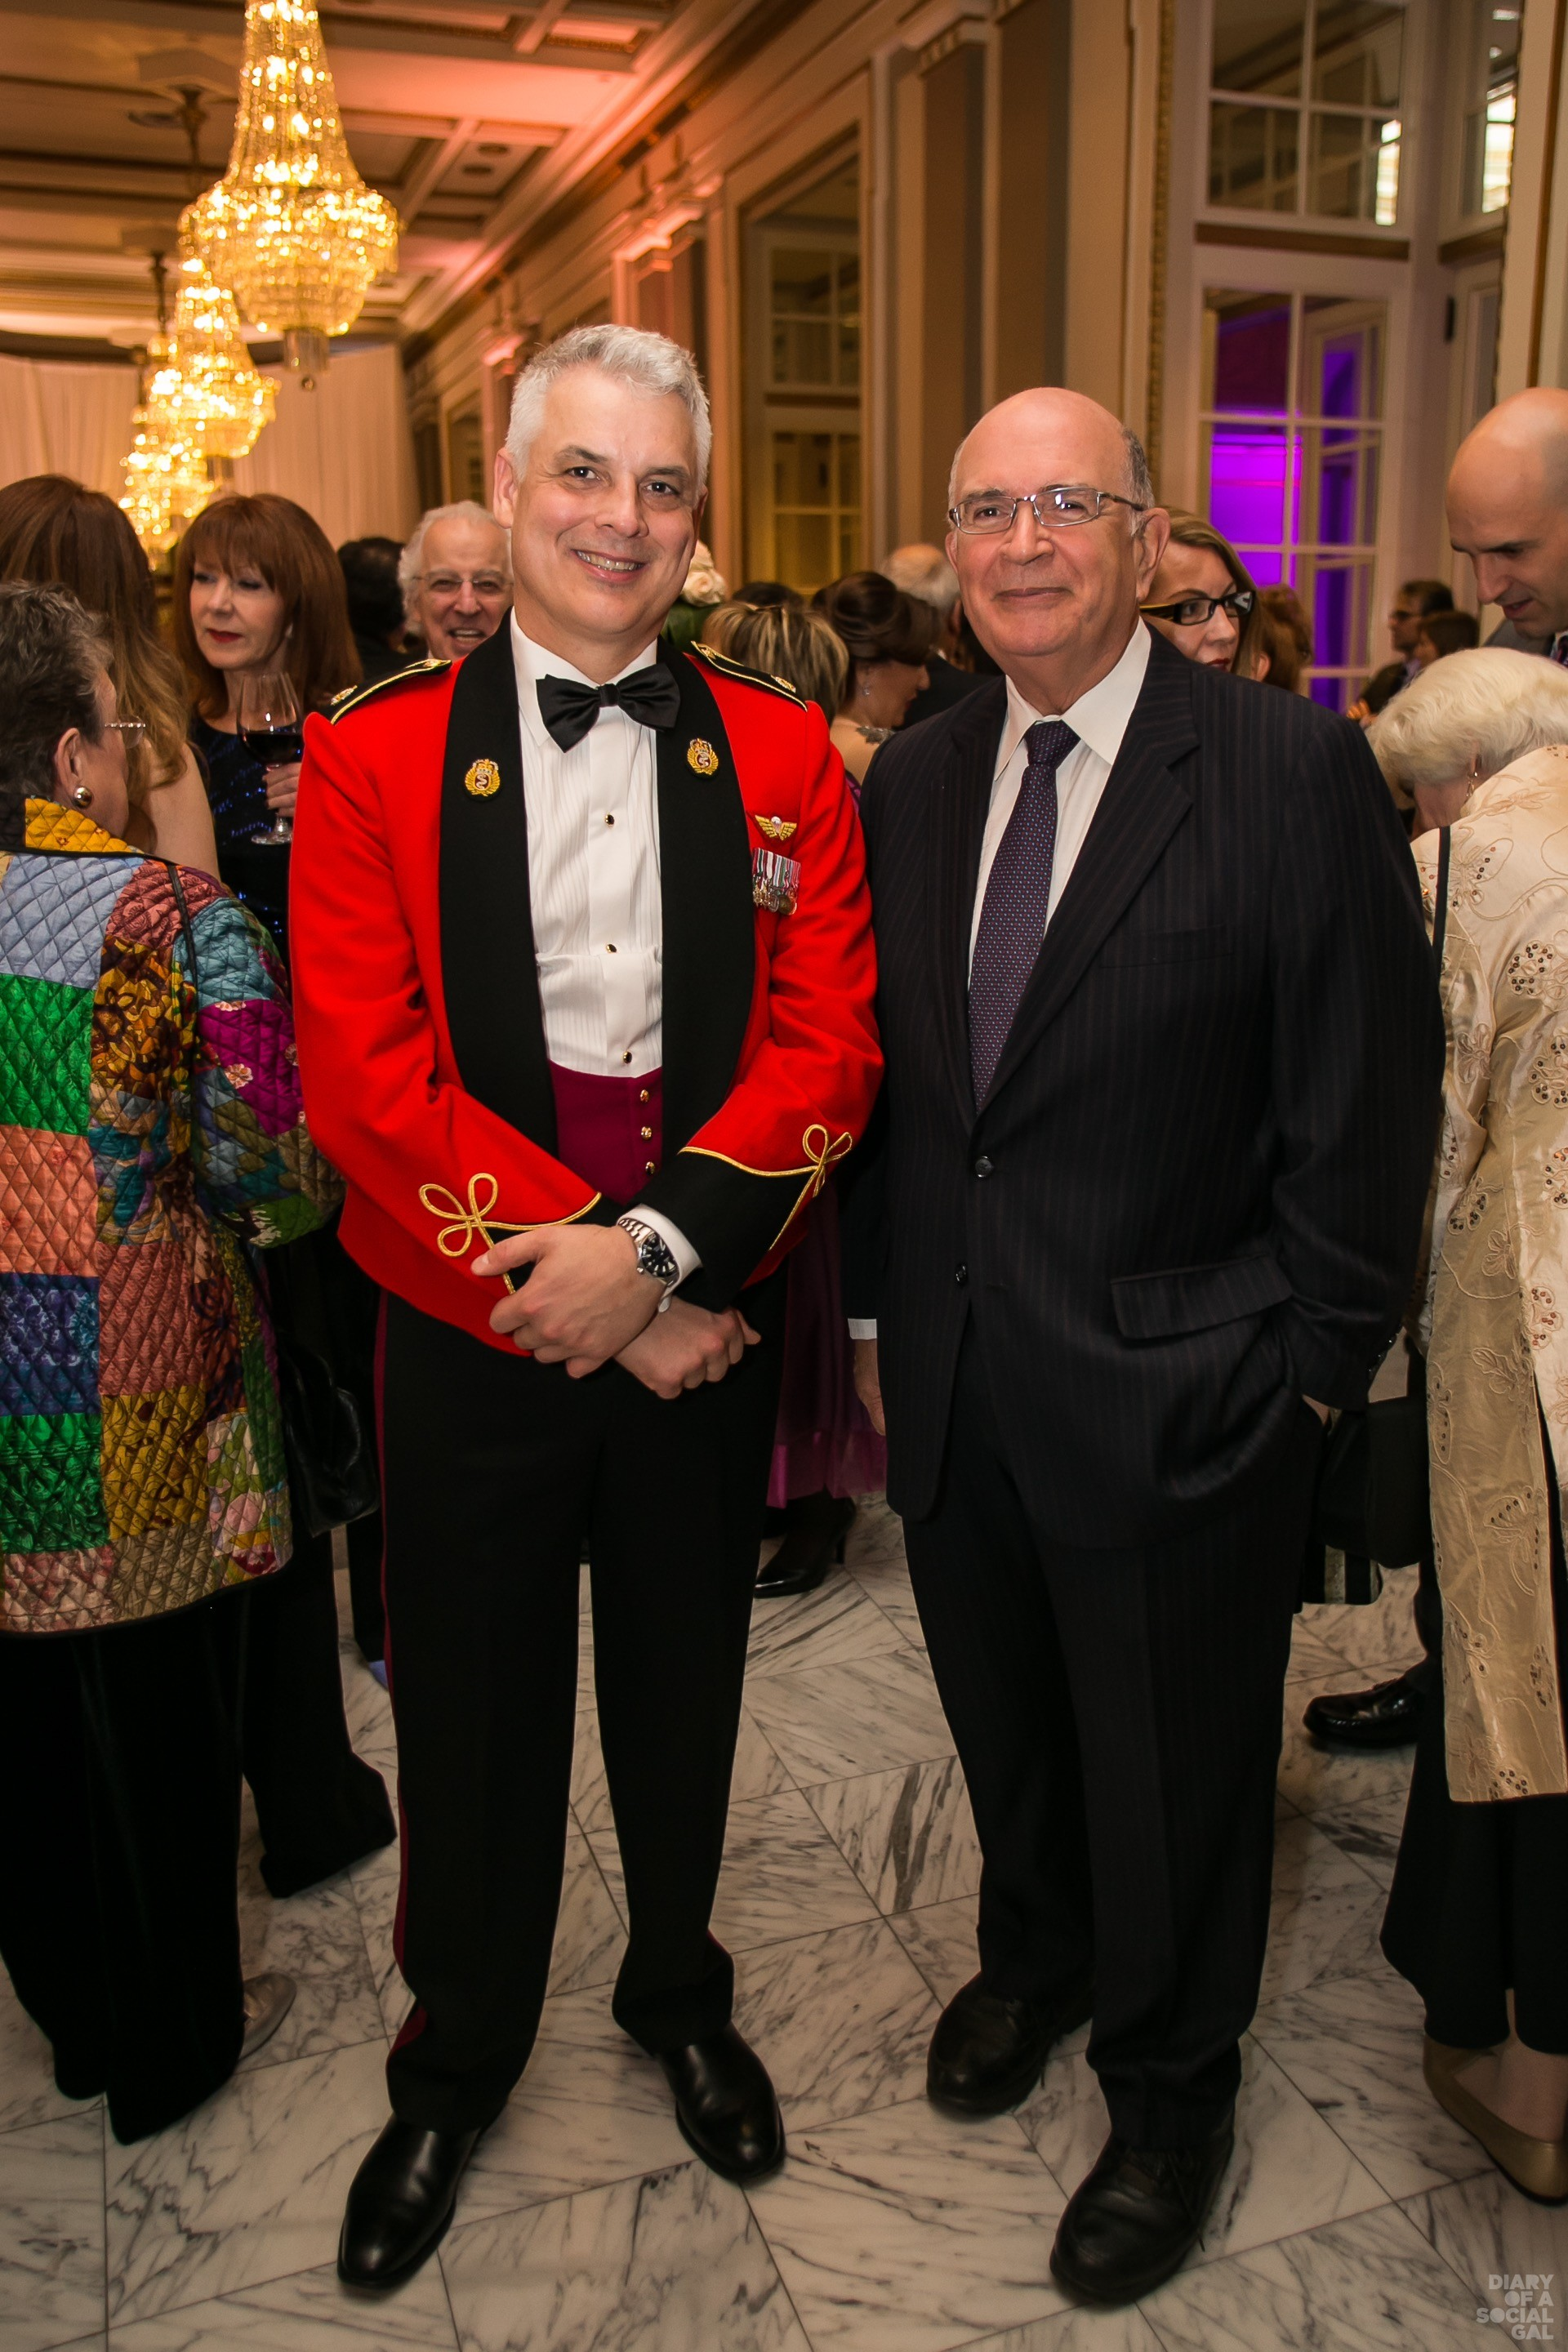 DASHING & DECORATED: MAJOR ANDREW BECKETT and Lt. Col. (retired) BRUCE BOLTON.